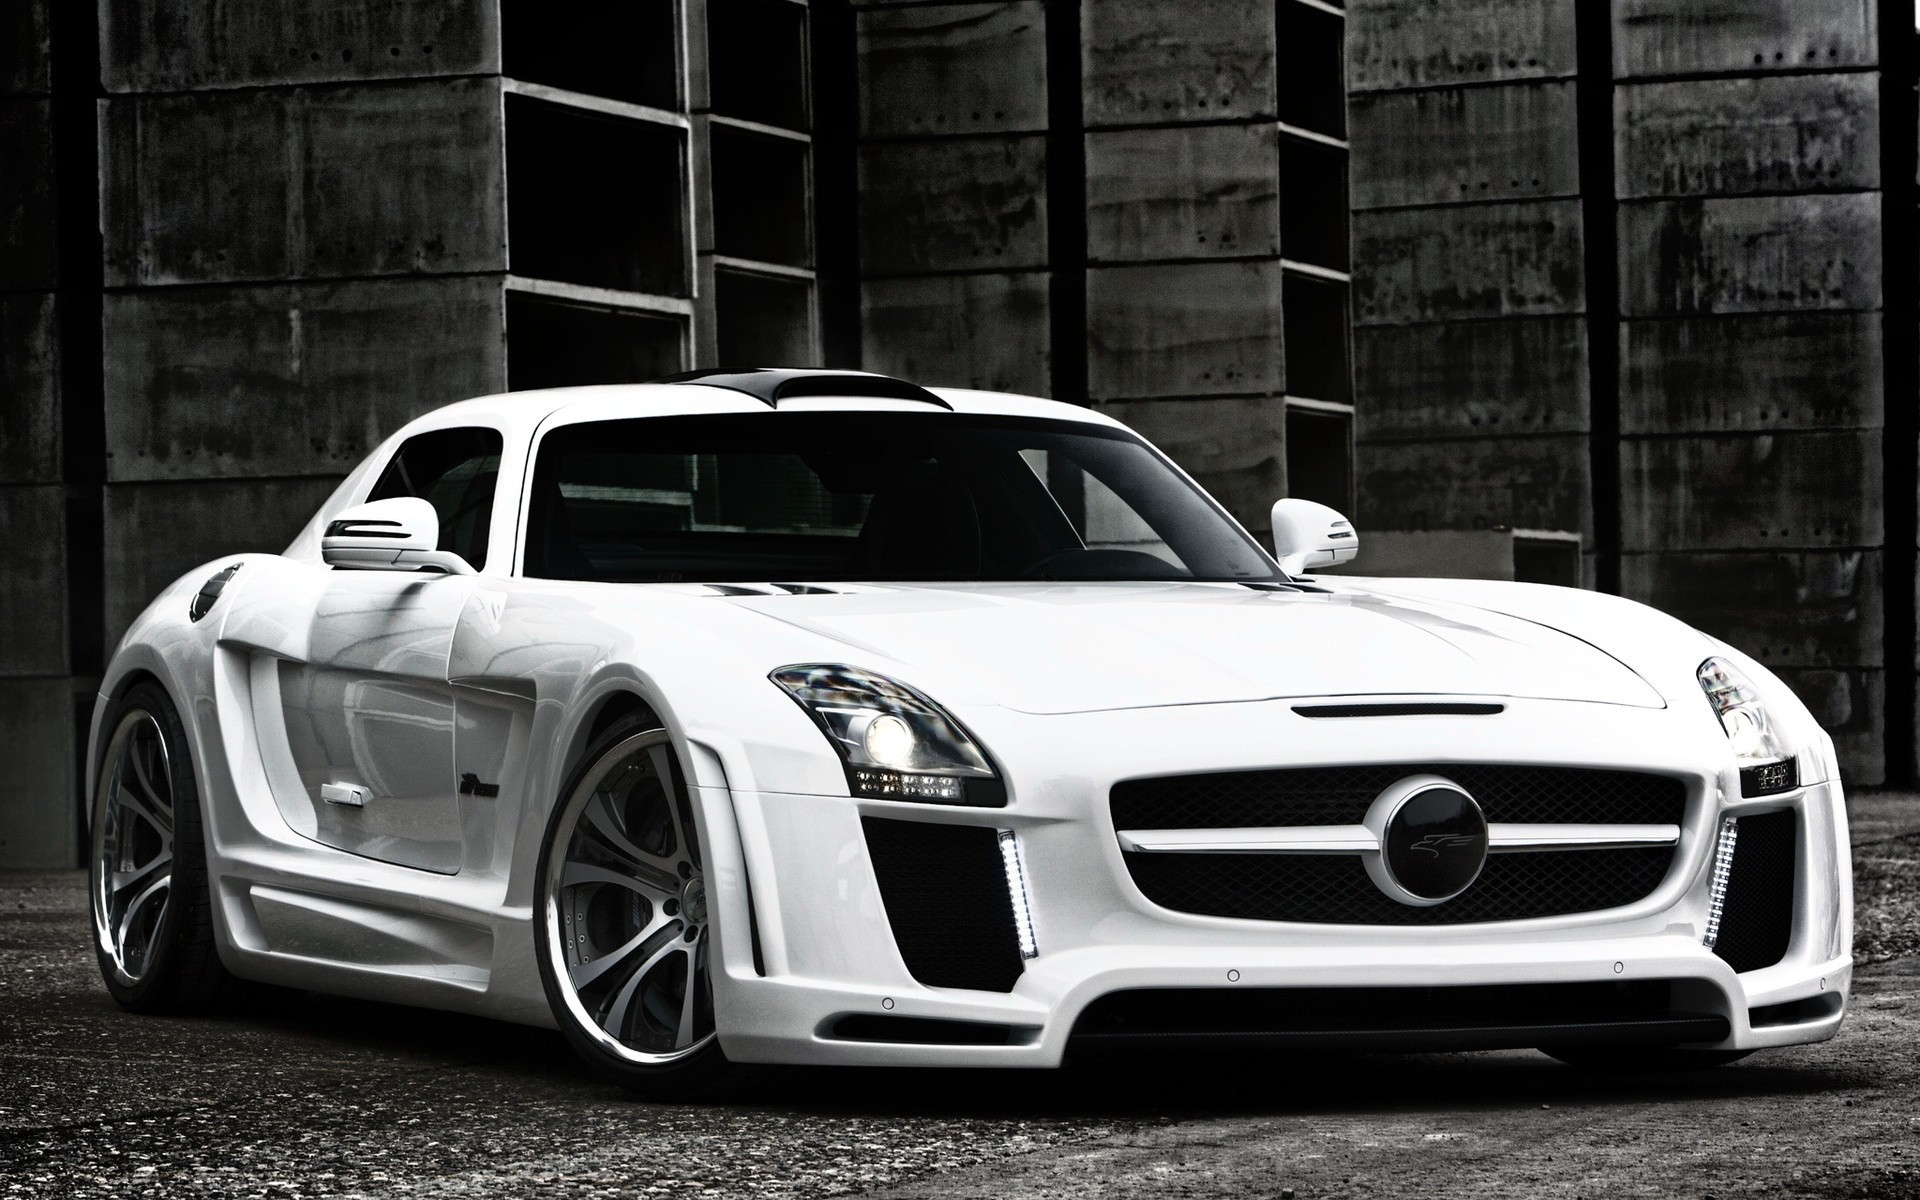 Nice White Cars Front German Roadster Sls Amg Sportscar Sportscars Style Mercedes  Benz Wallpaper X Wallpaperup